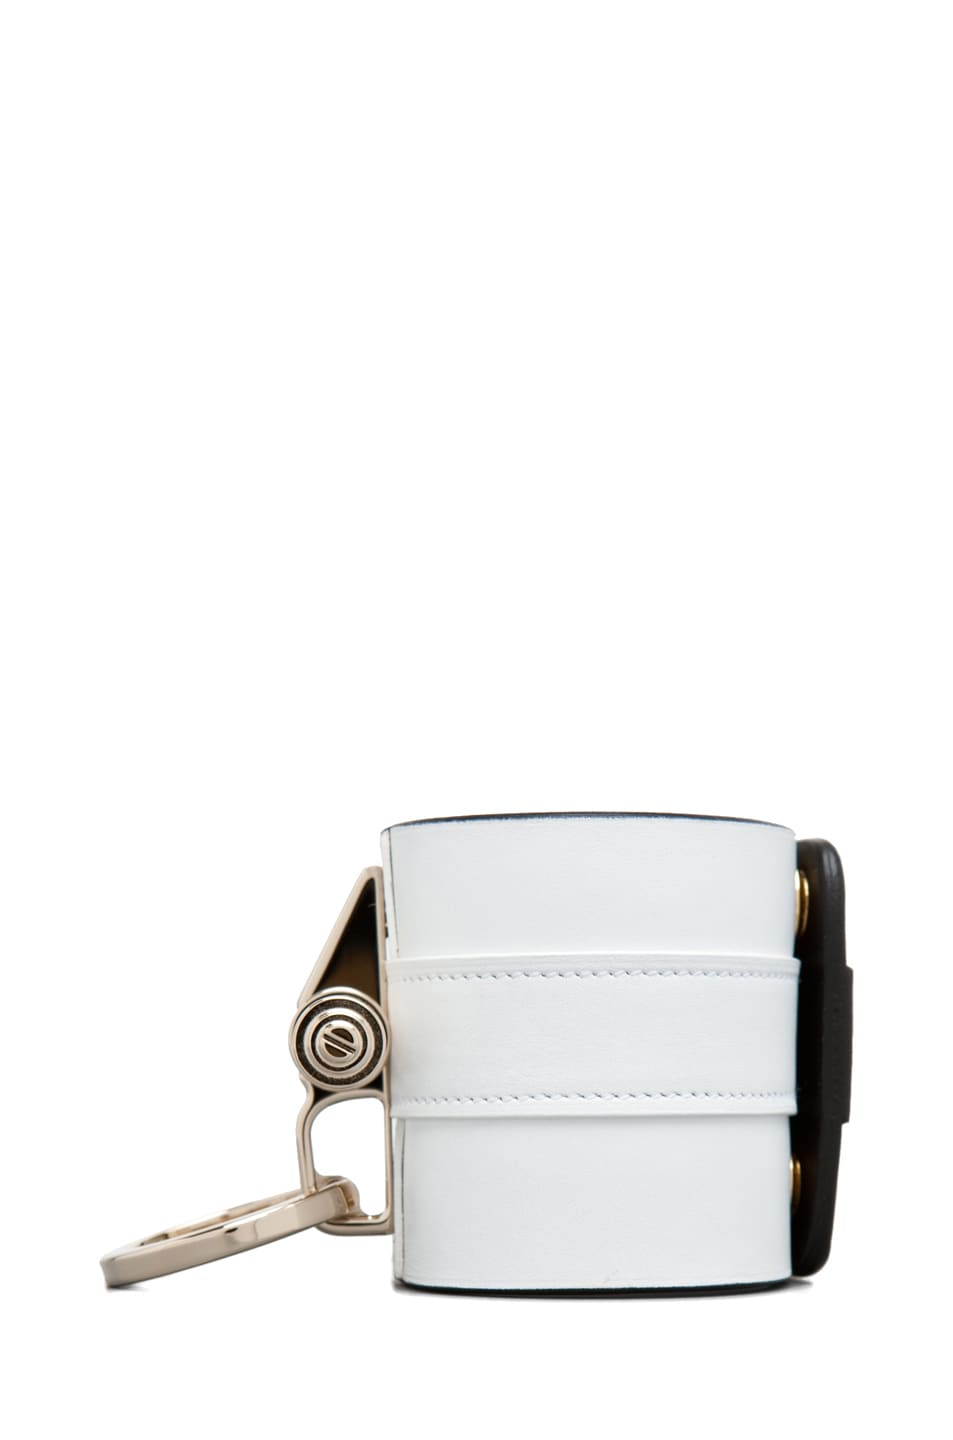 Image 2 of GIVENCHY Obsedia Large Cuff in White/Black